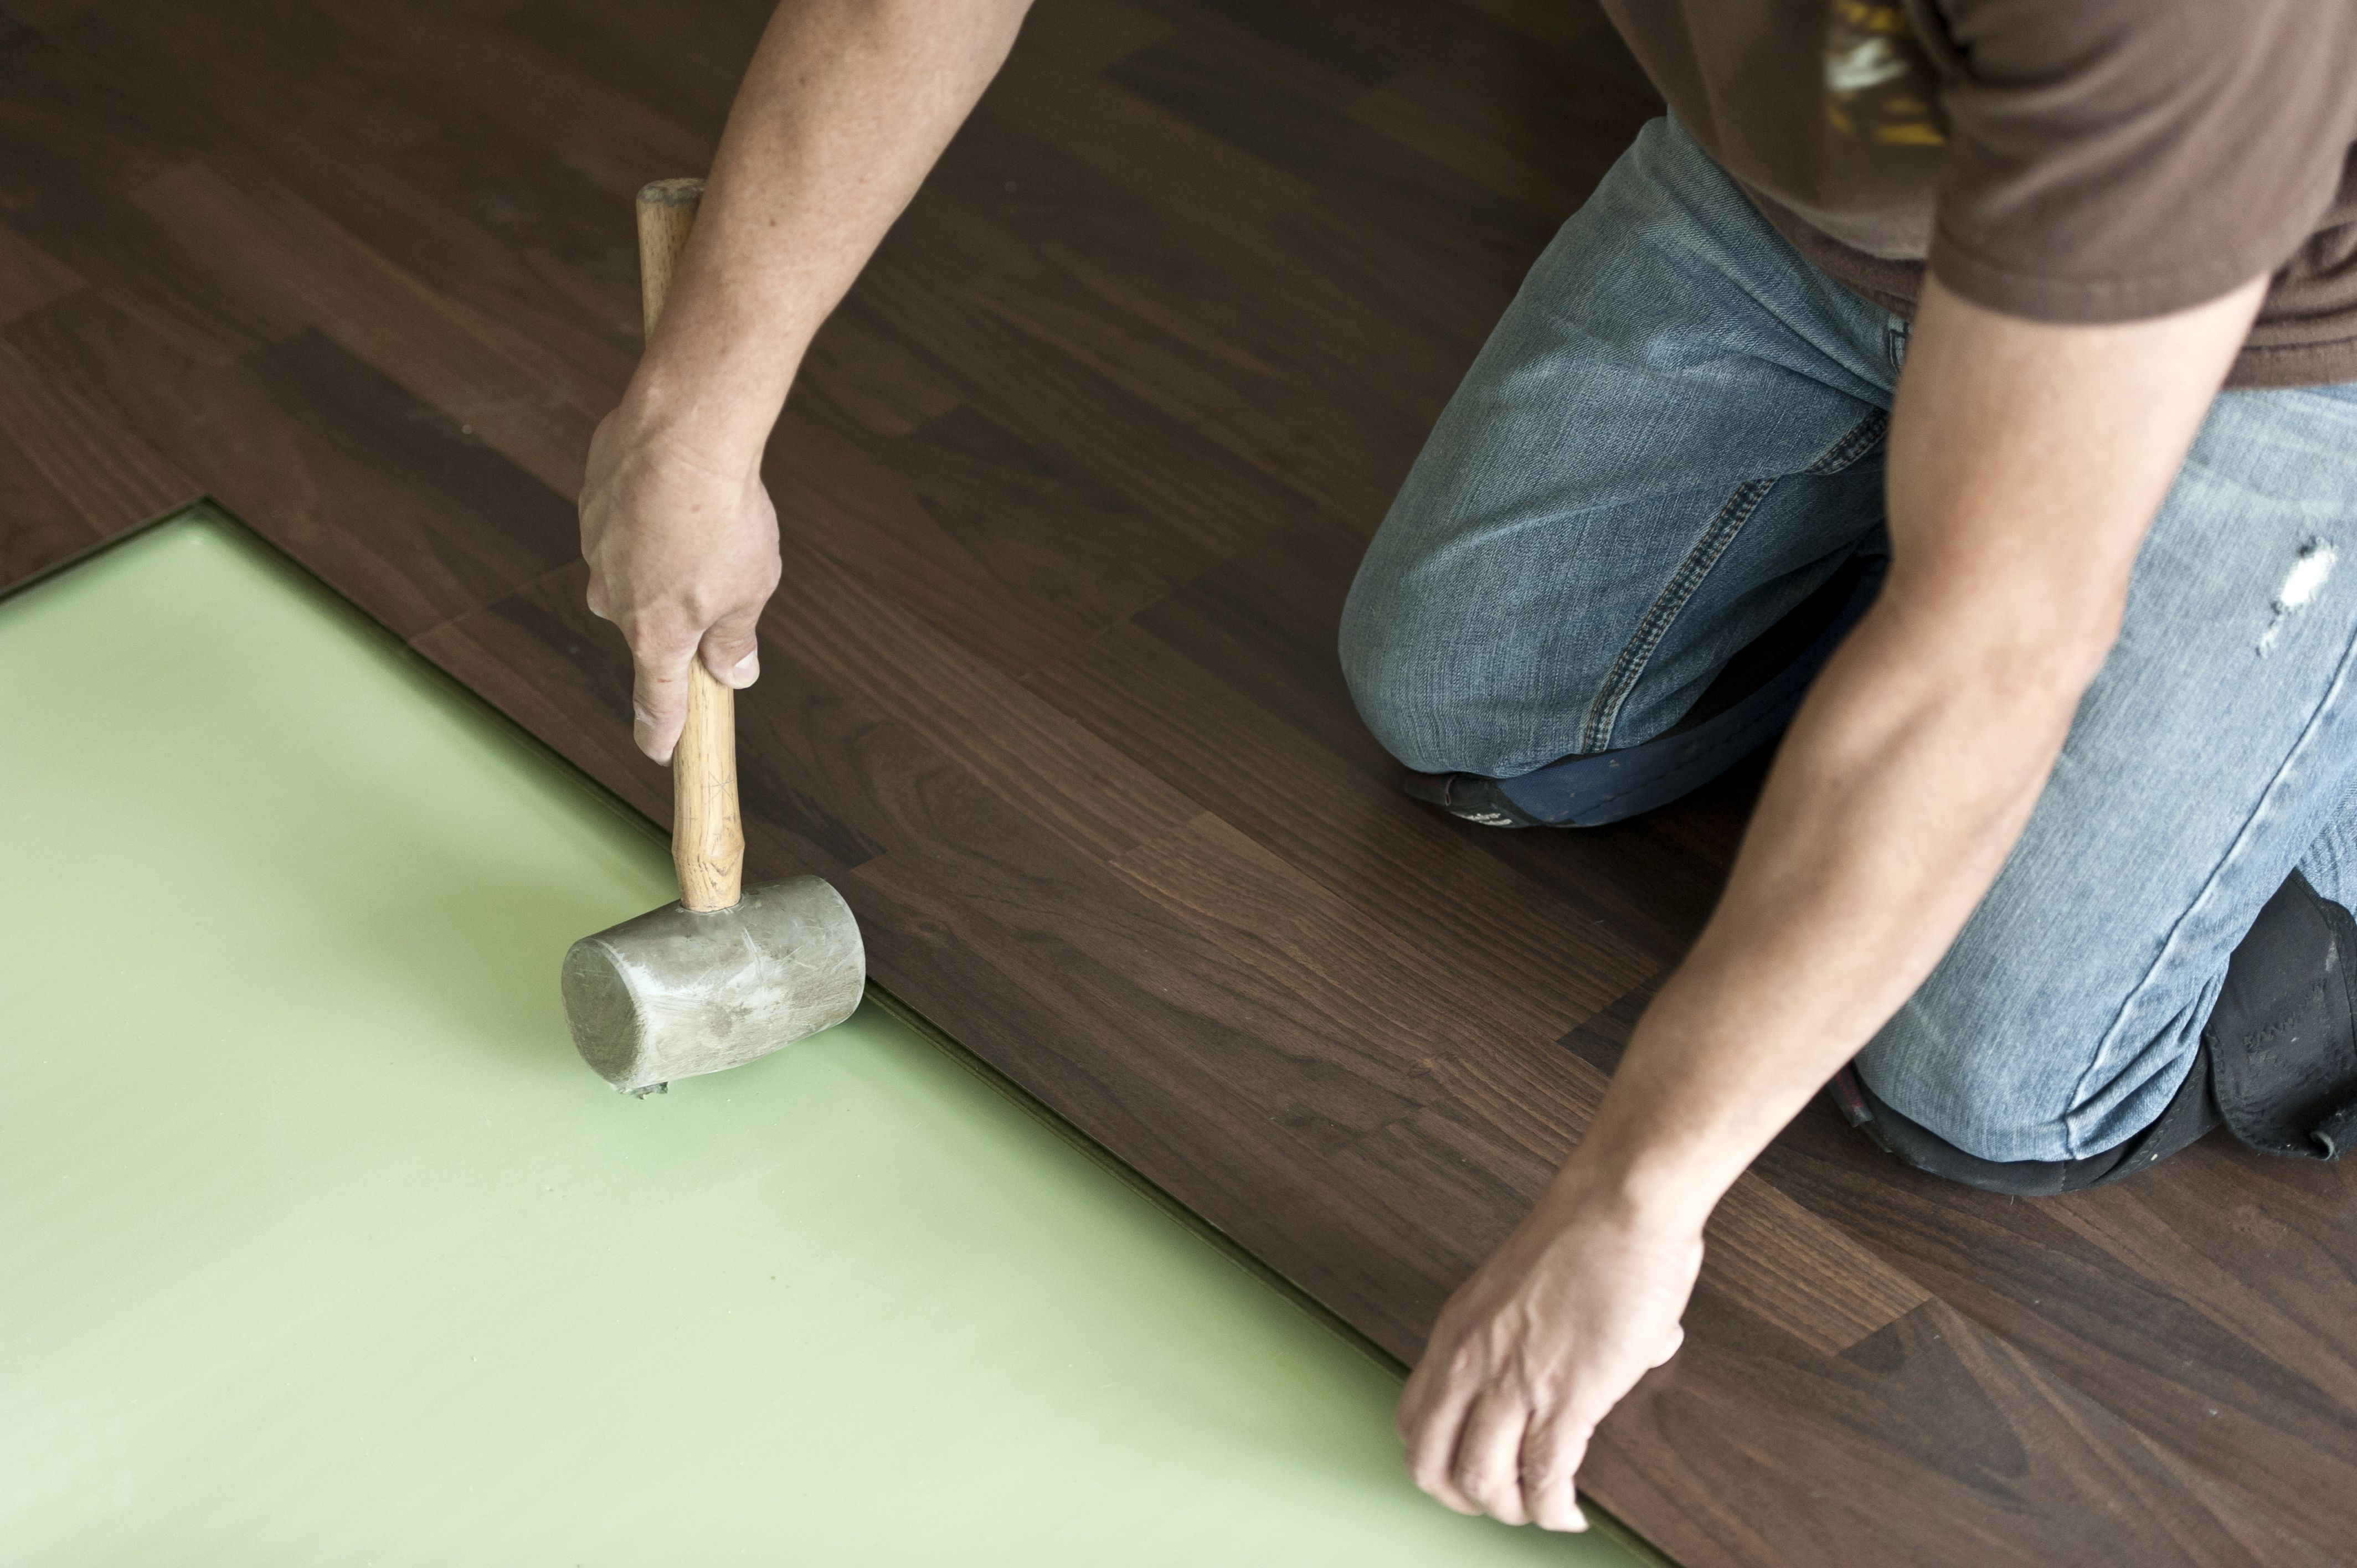 how to install floating hardwood floors yourself of can a foam pad be use under solid hardwood flooring in installing hardwood floor 155149312 57e967d45f9b586c35ade84a